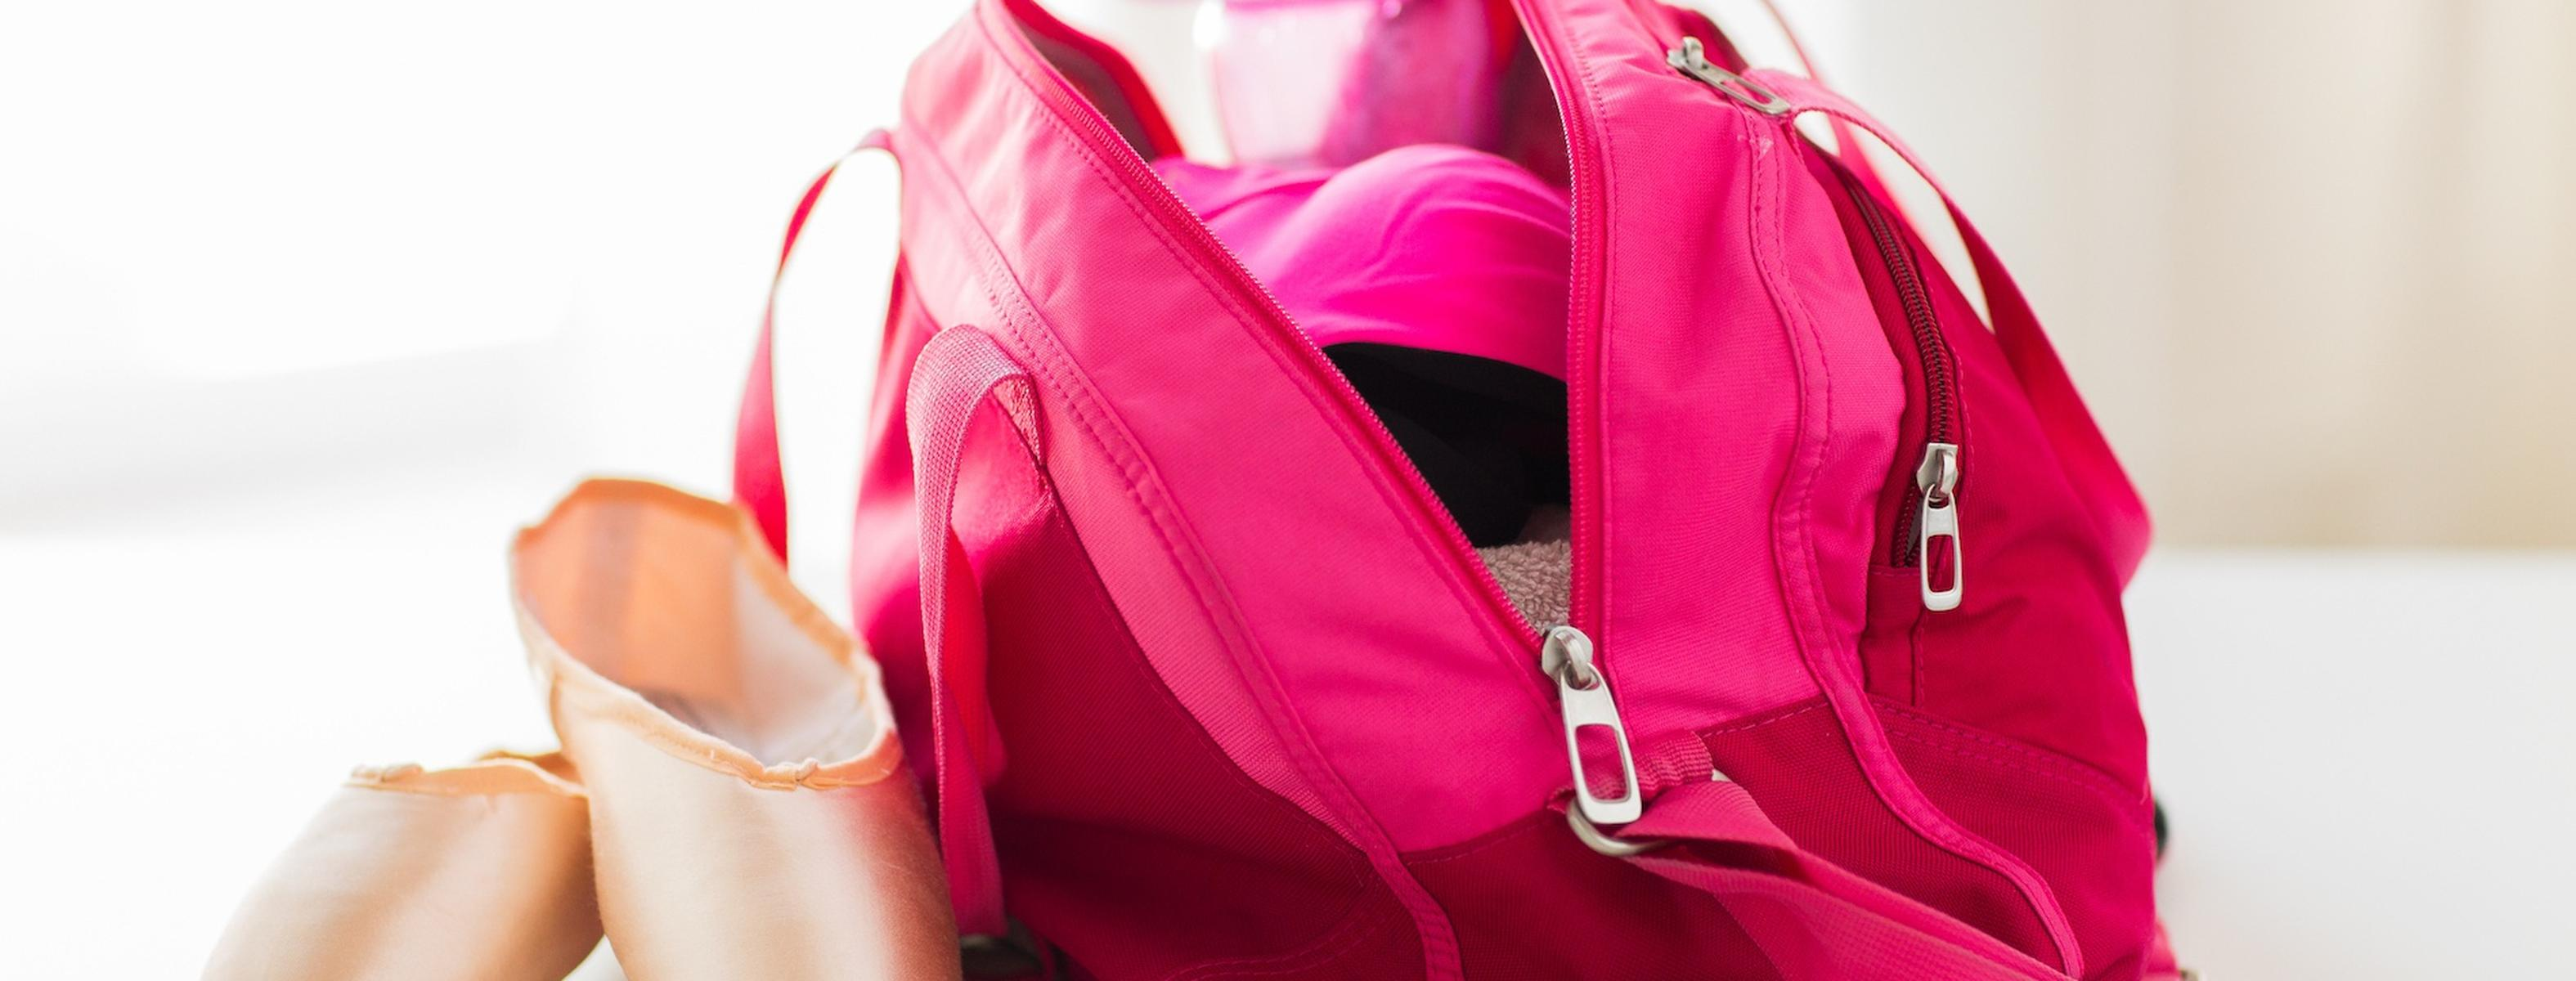 20 Essential Items to Pack in Your Dance Bag